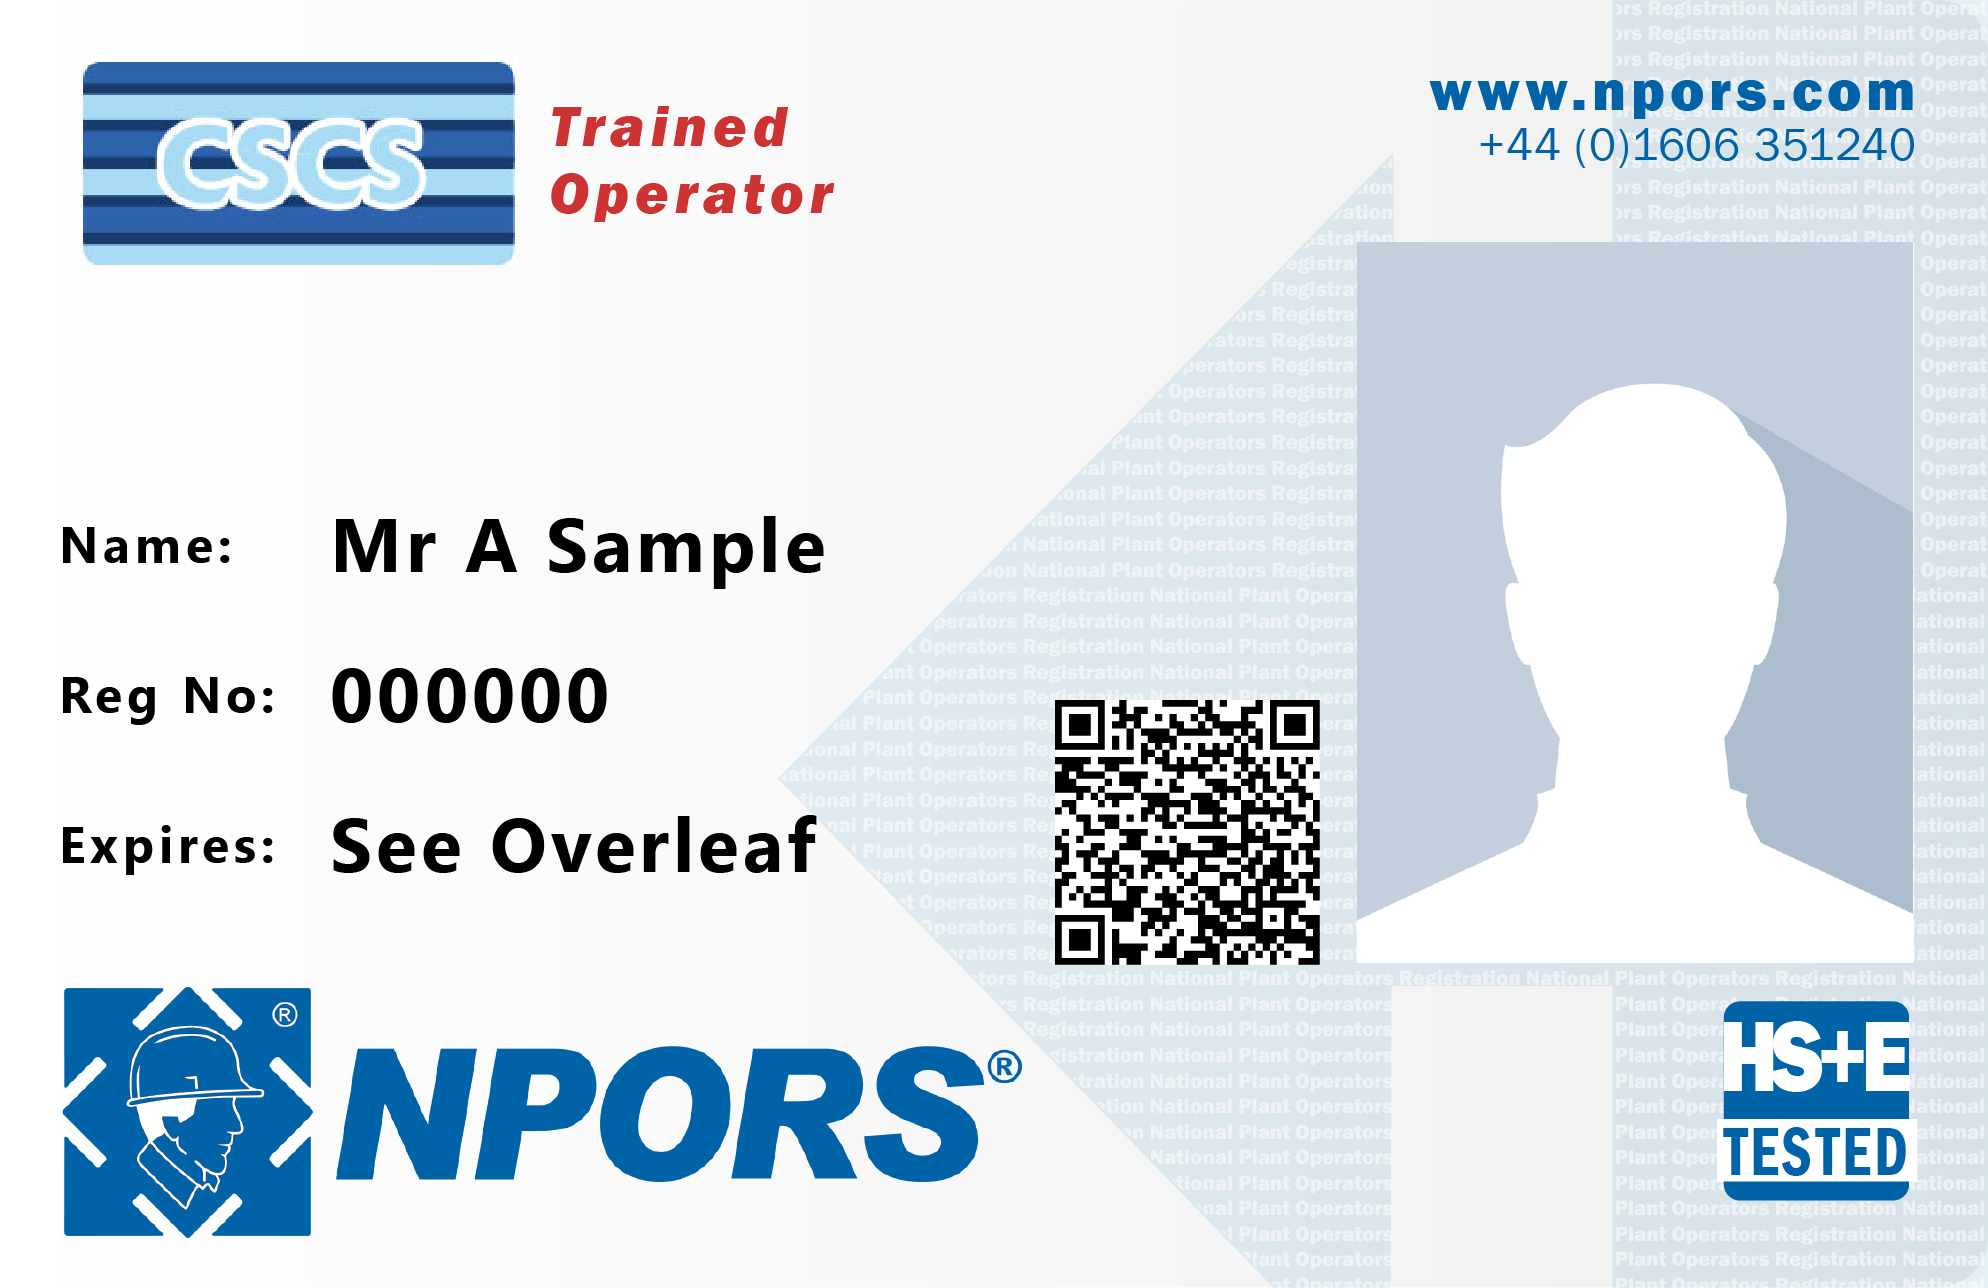 NPORS trained operator